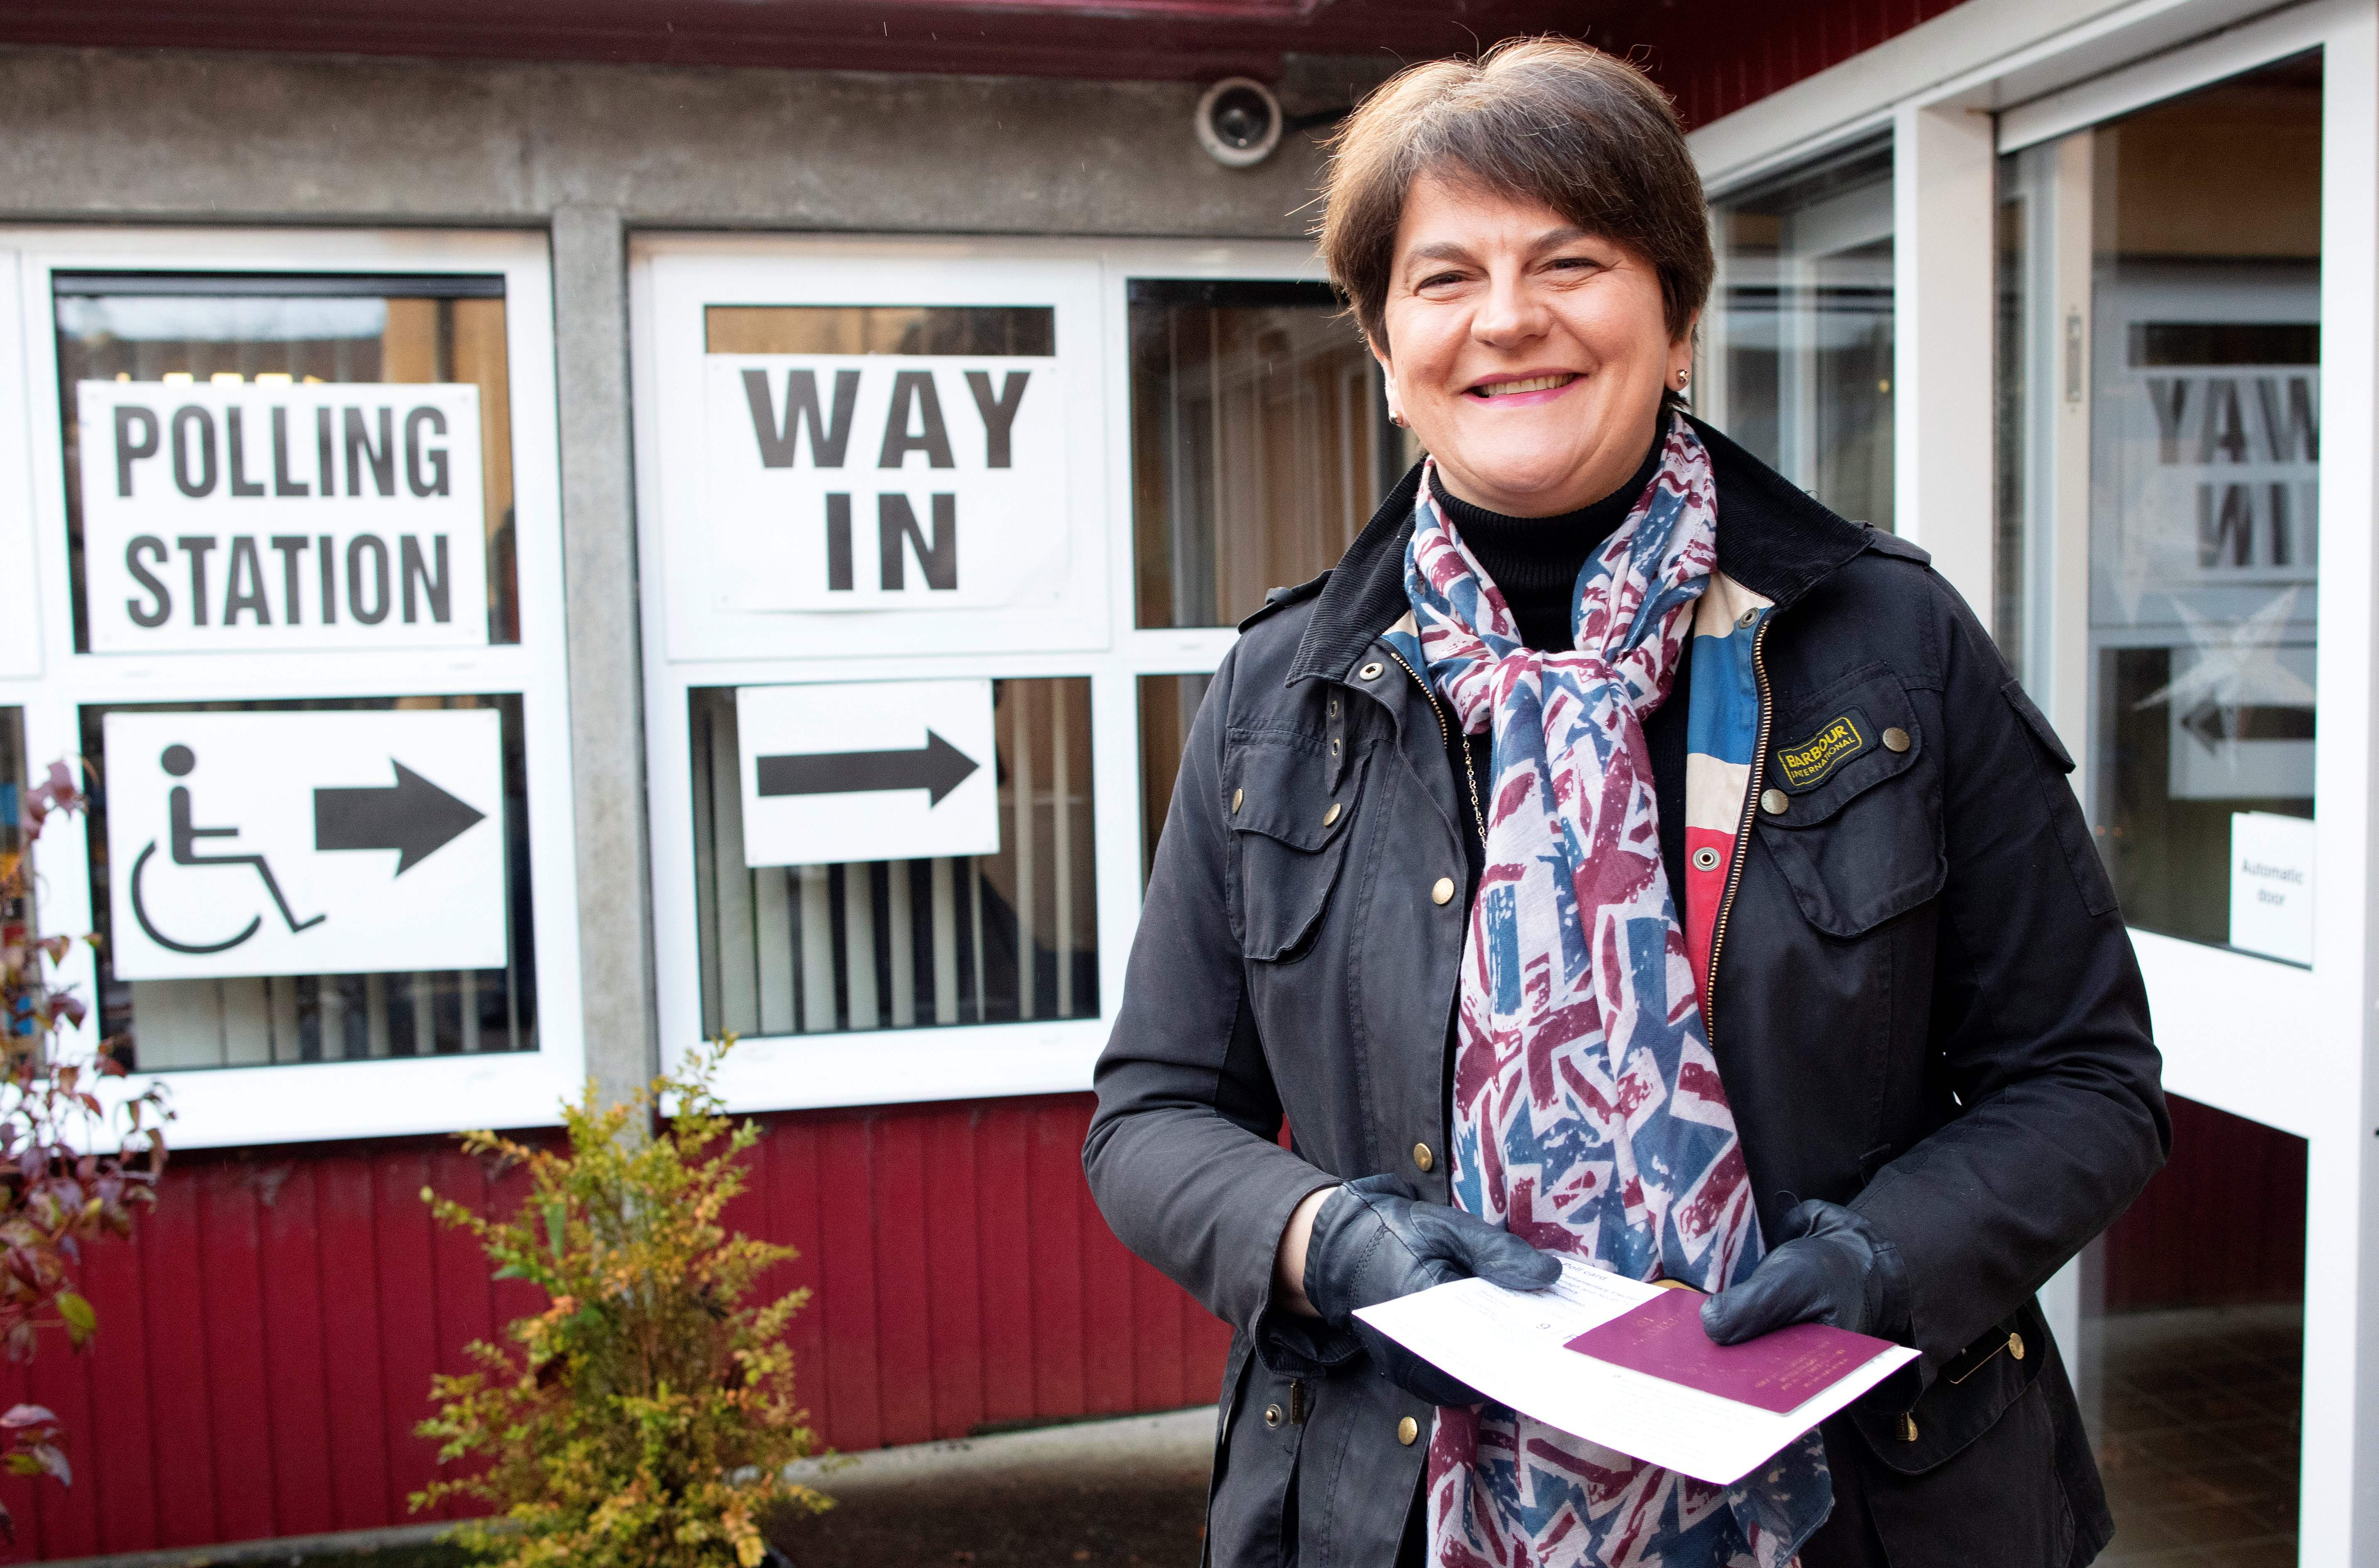 Northern Ireland's Democratic Unionist Party (DUP) leader Arlene Foster wears a Union flag-themed scarff as she arrives at a Polling Station to cast her ballot paper and vote in Brookeborough, Northern Ireland, on December 12, 2019, as Britain holds a general election. (Photo by Paul Faith / AFP) (Photo by PAUL FAITH/AFP via Getty Images)